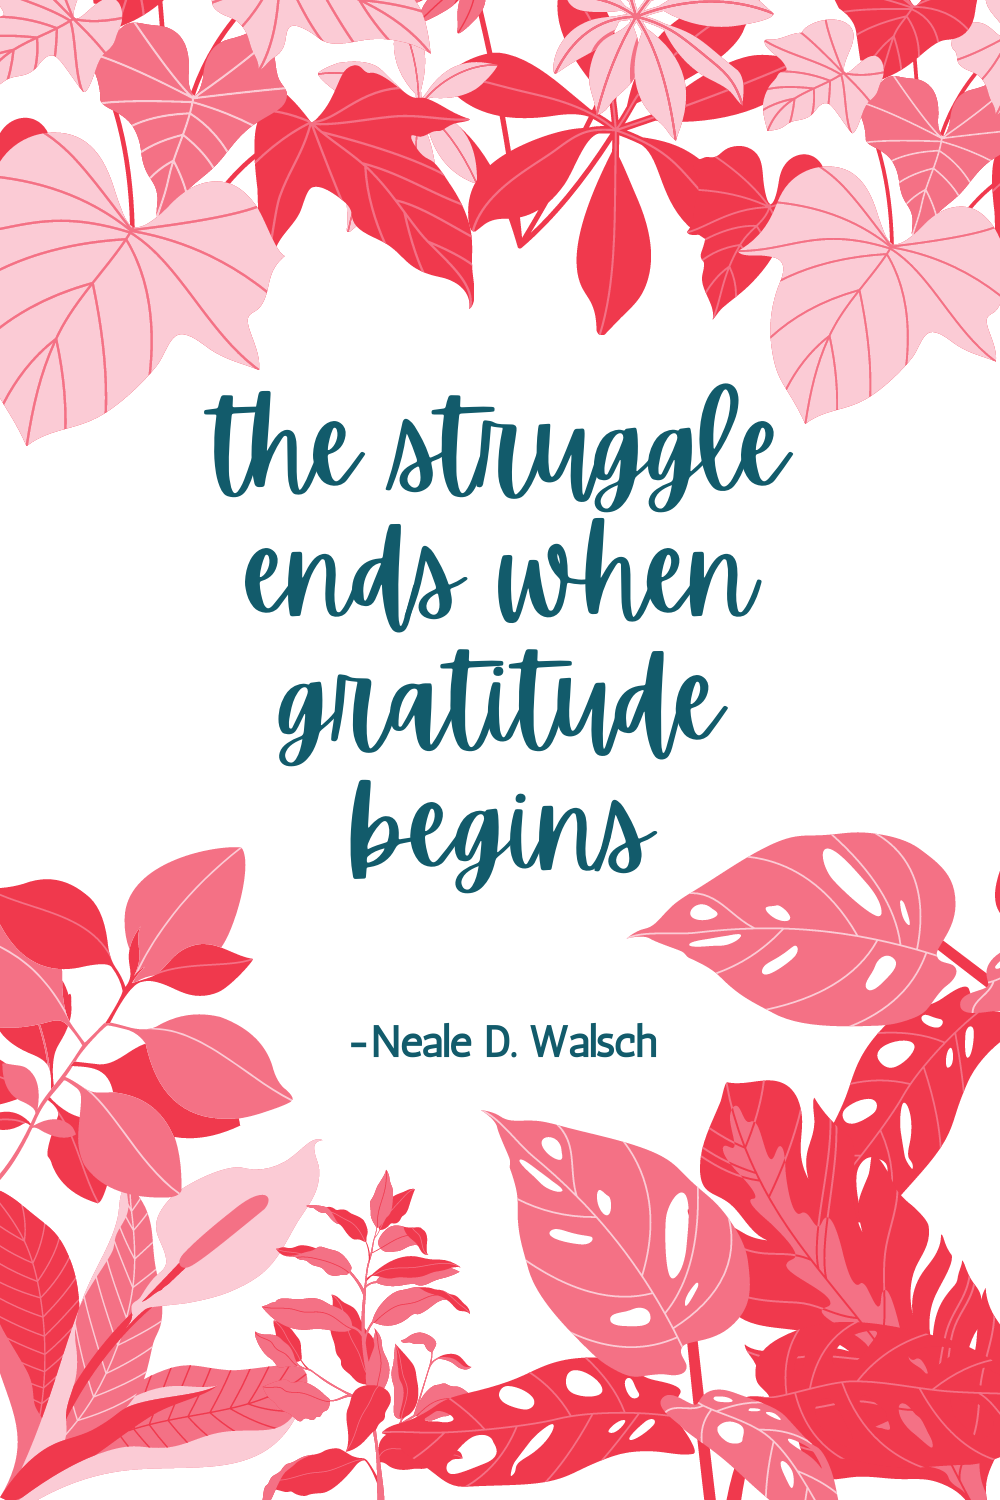 gratitude quotes-anita nowinska art blog